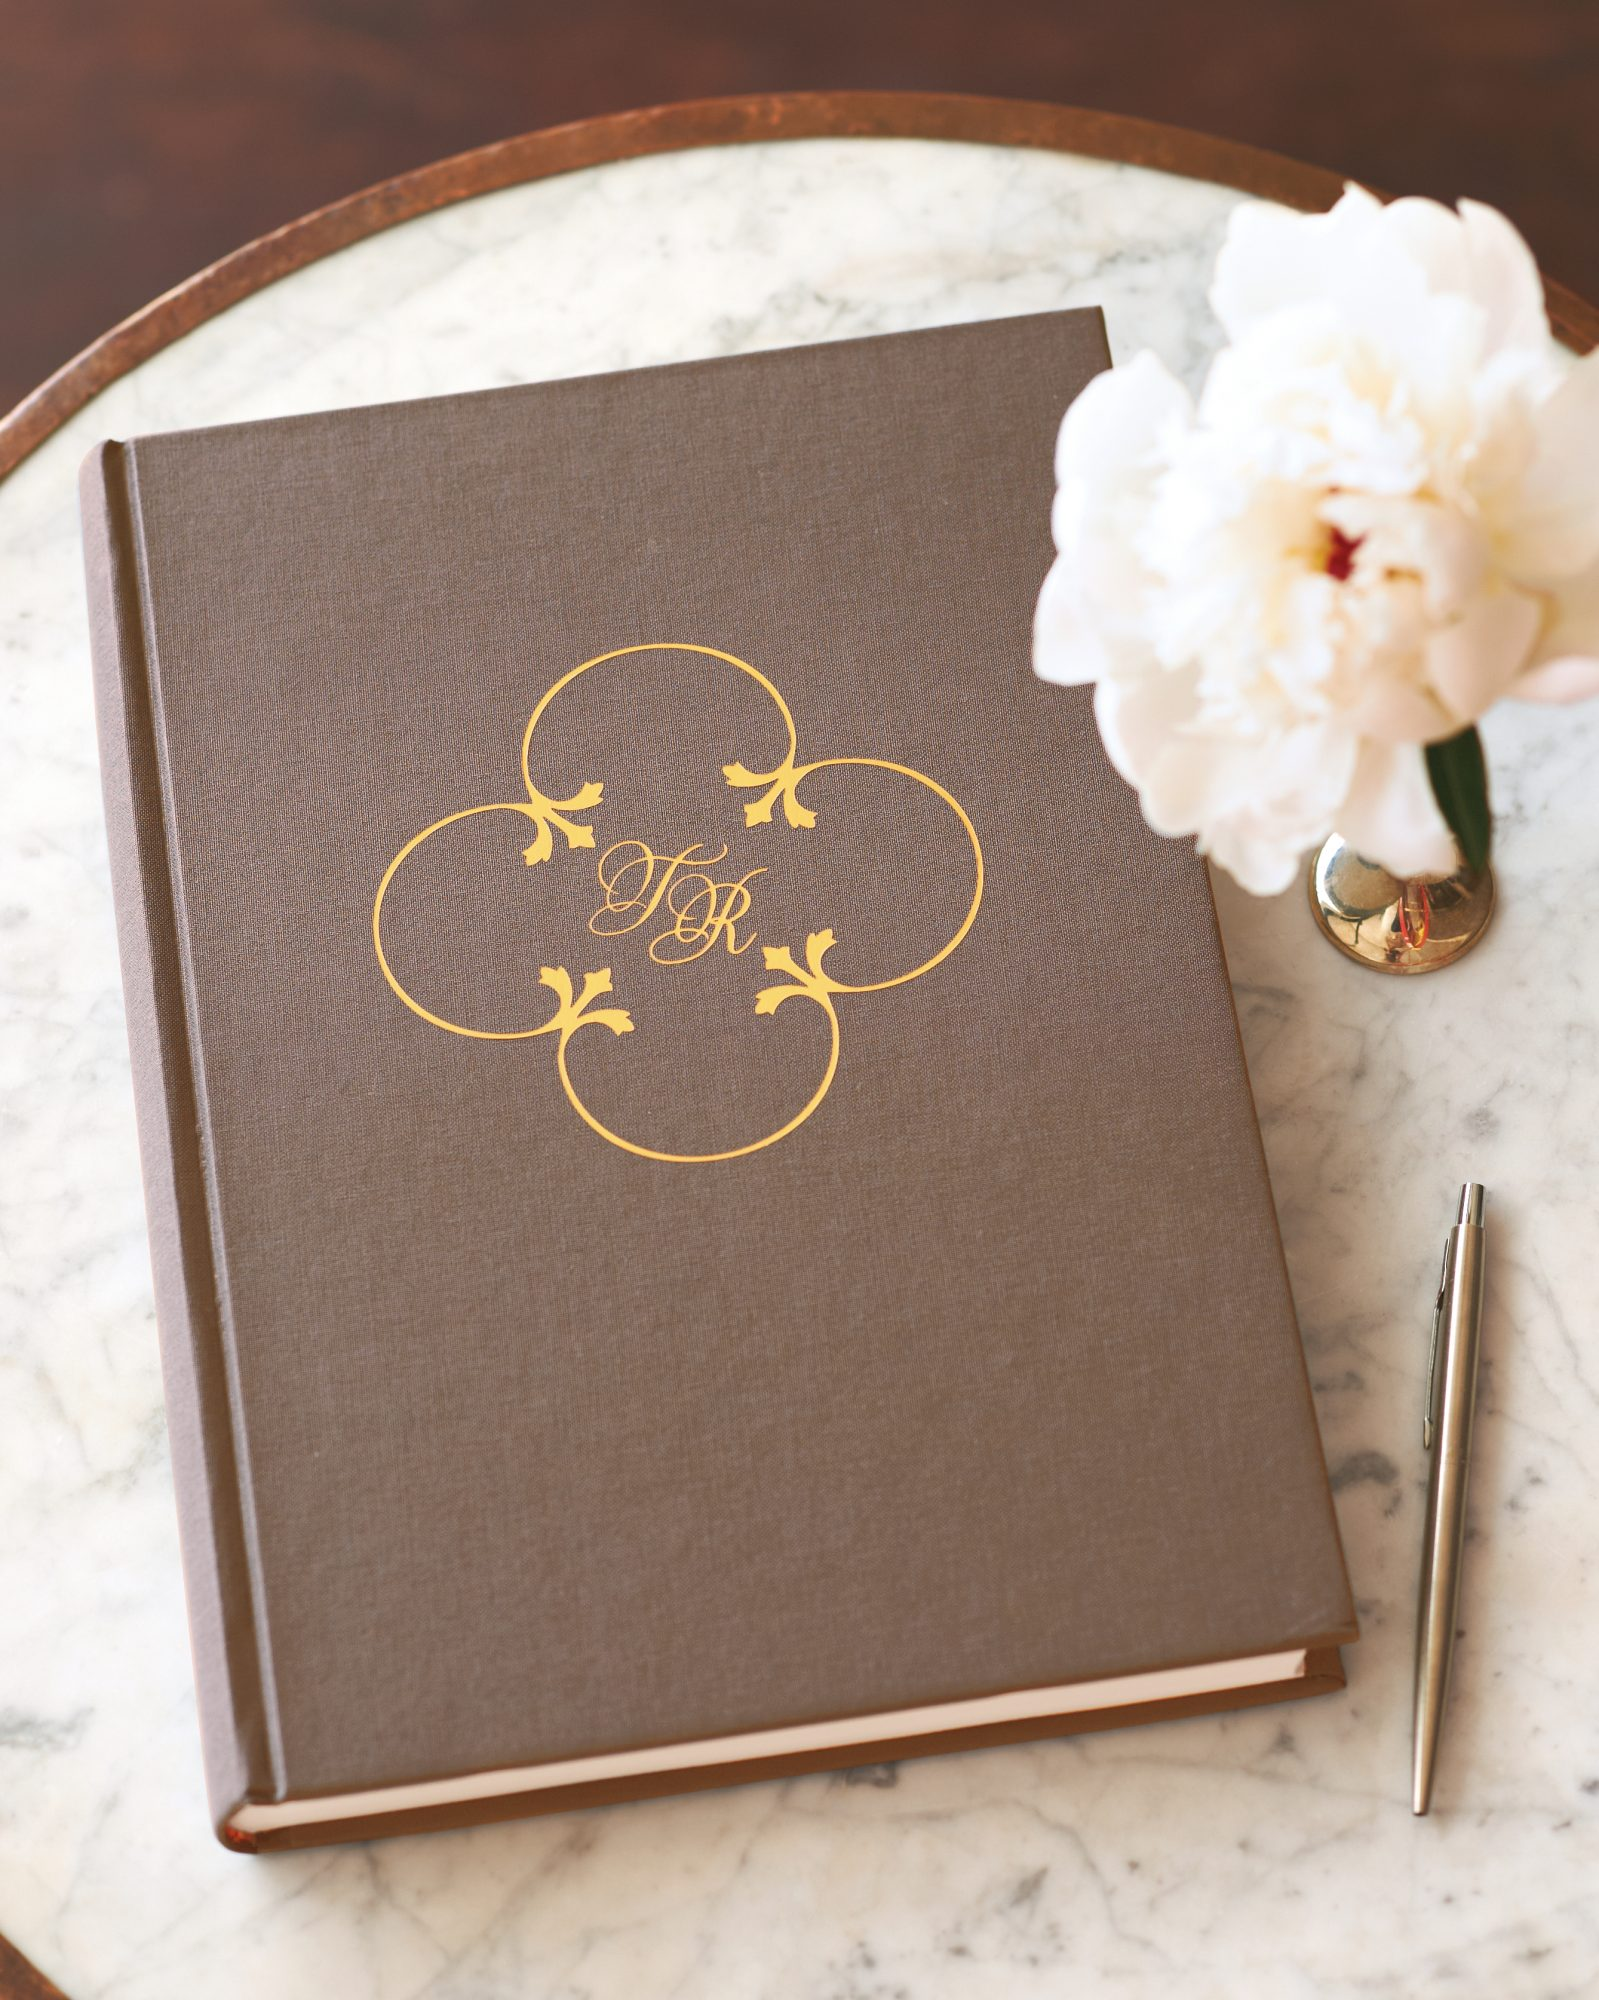 The couple's initials (and wedding motif) adorned the guest book at their nuptial bash.